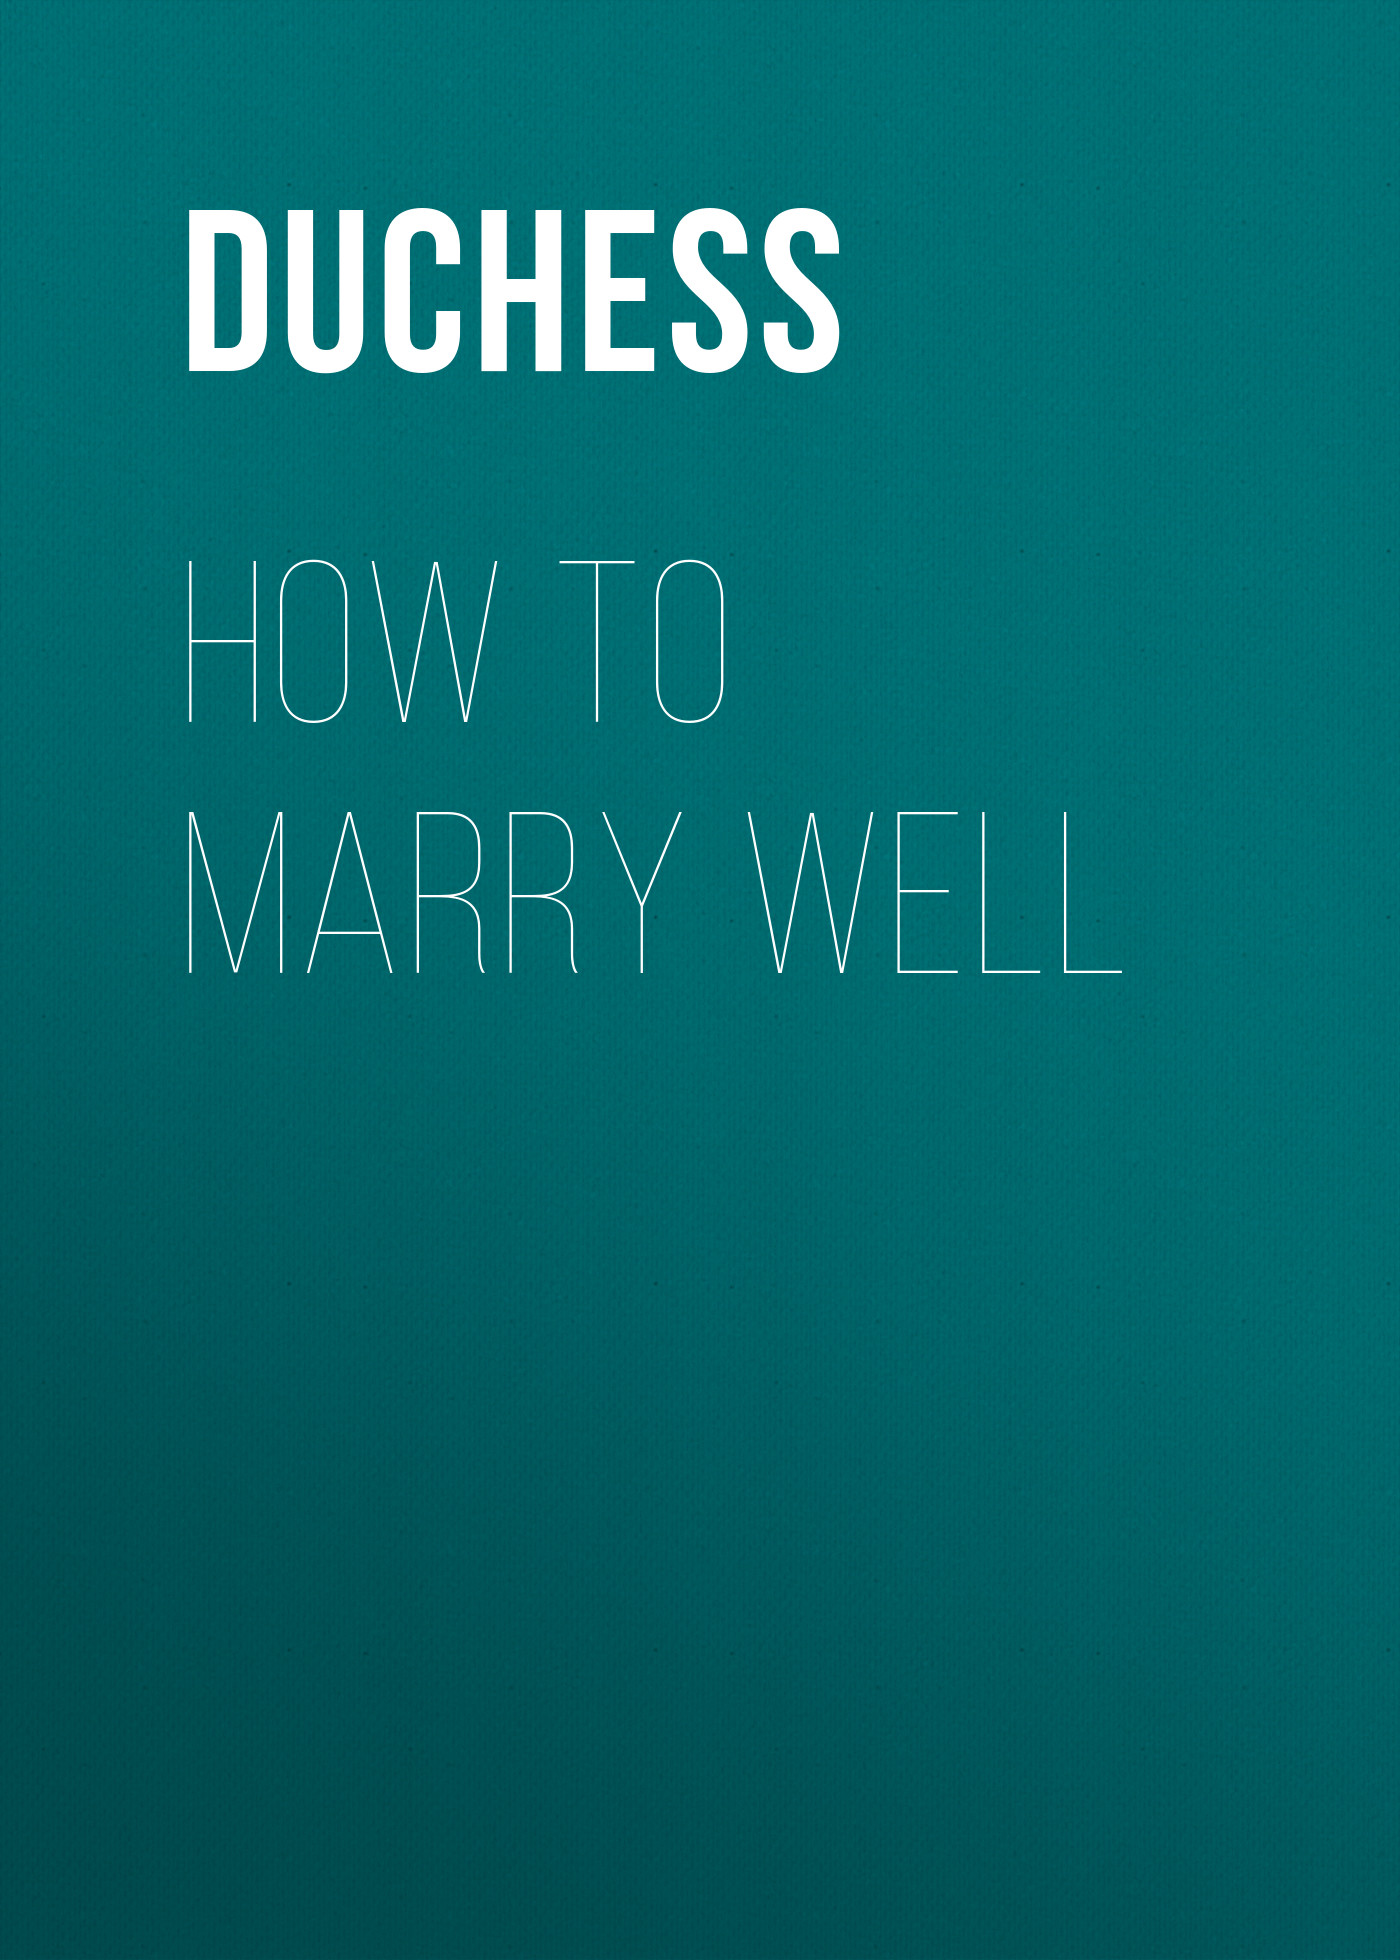 Duchess How to Marry Well whom to marry